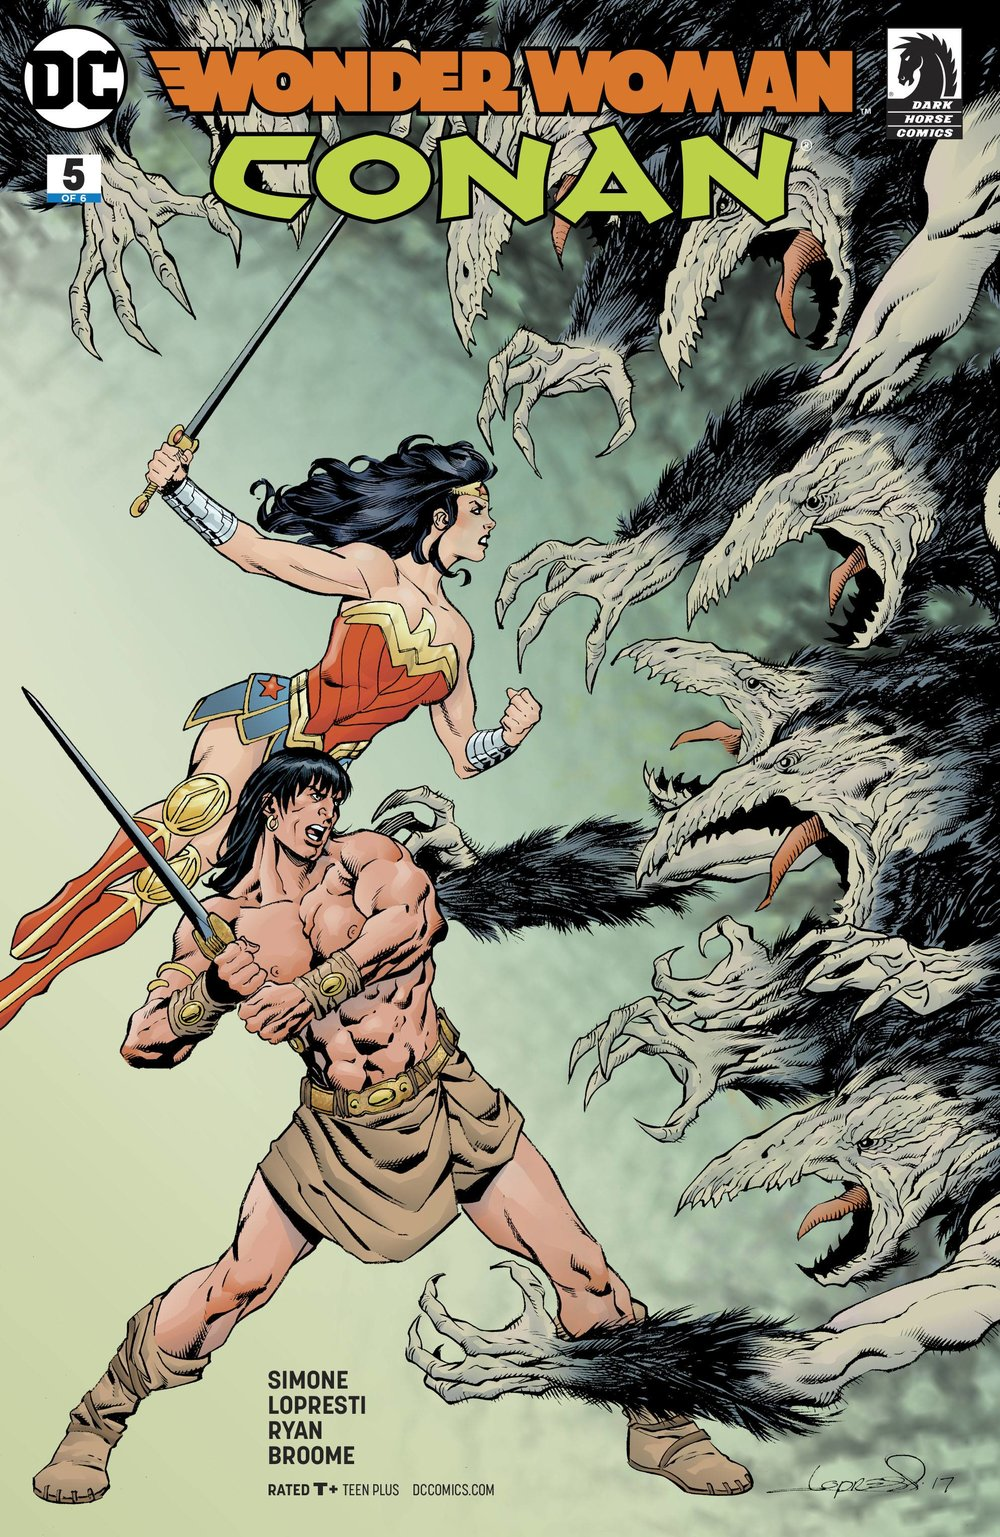 WONDER WOMAN CONAN 5 of 6.jpg